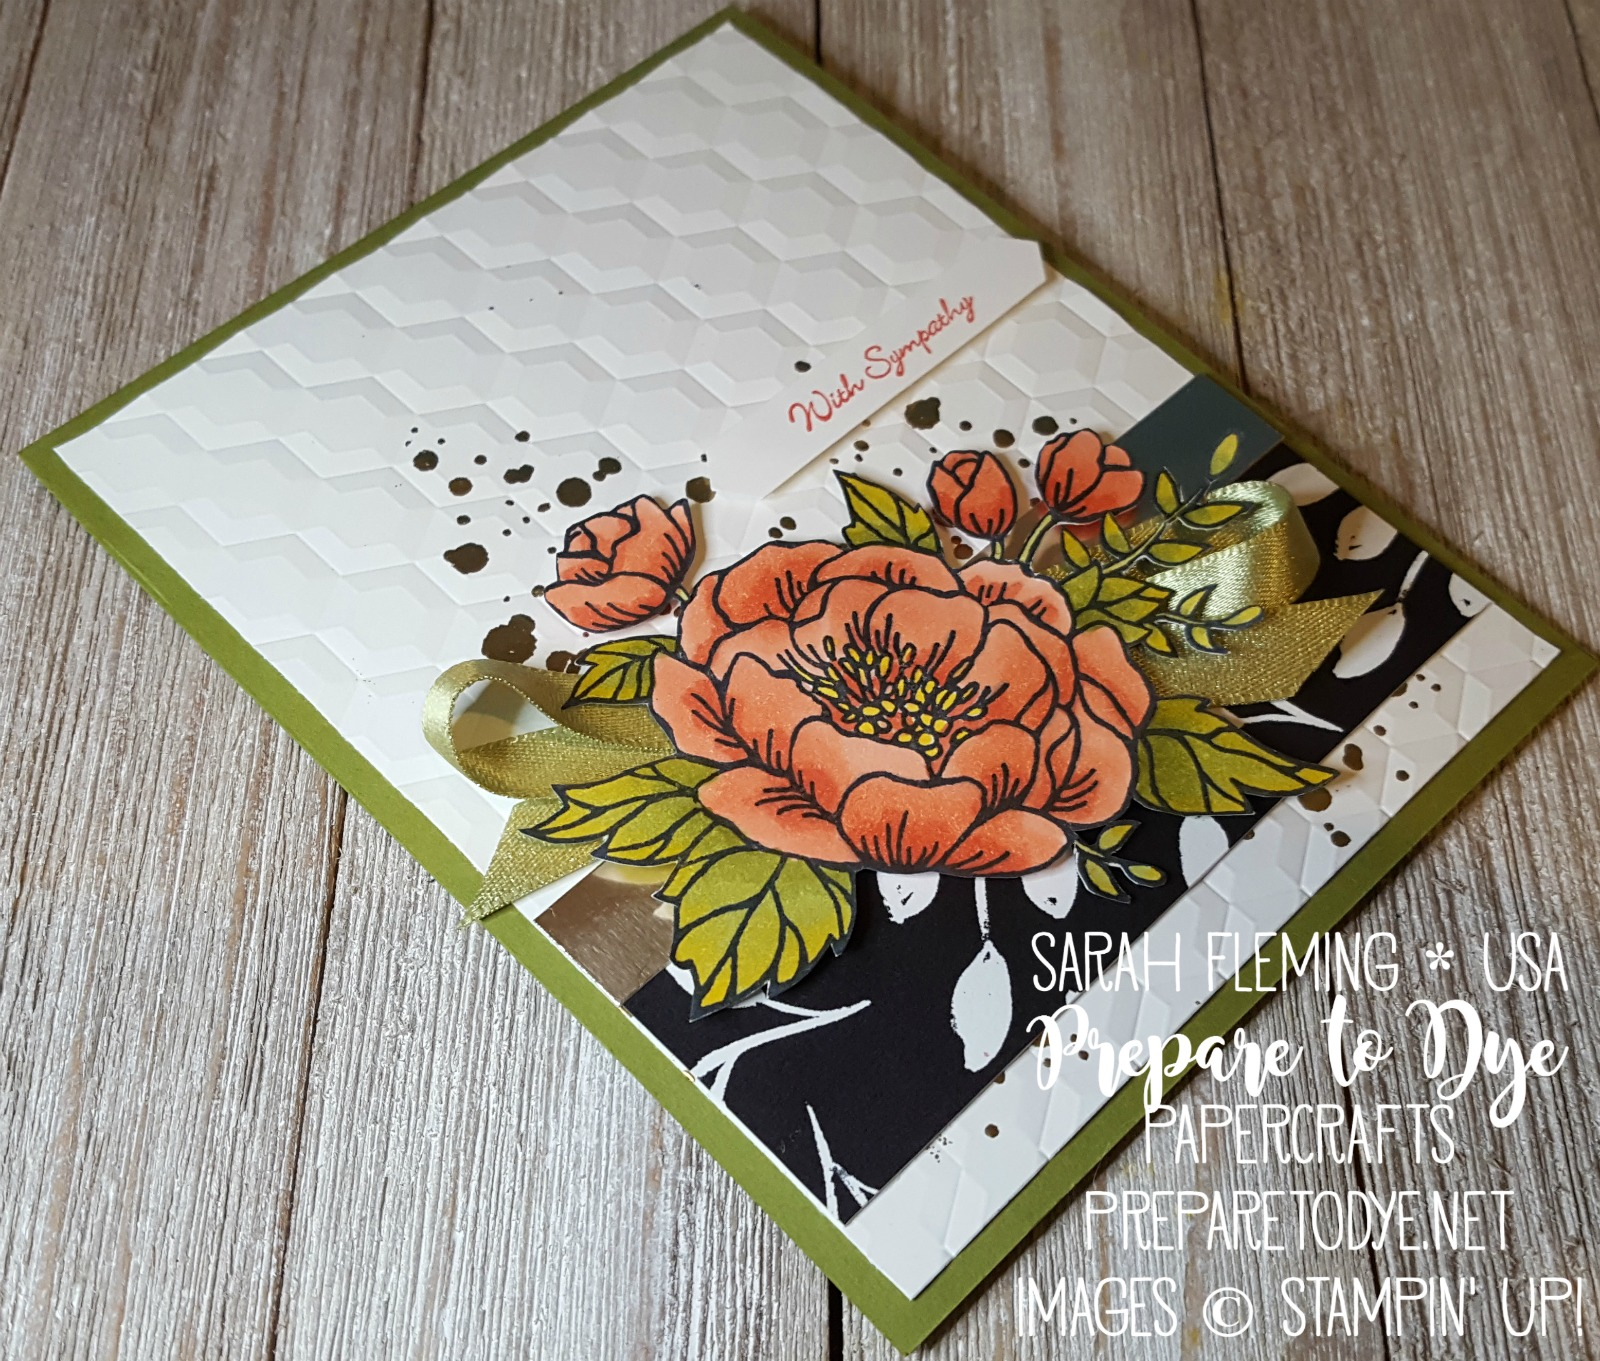 Stampin' Up! handmade sympathy card with Birthday Blooms, Teeny Tiny Wishes, Stampin' Blends, and Merry Little Christmas designer series paper - Sarah Fleming - Prepare to Dye Papercrafts #IIBH